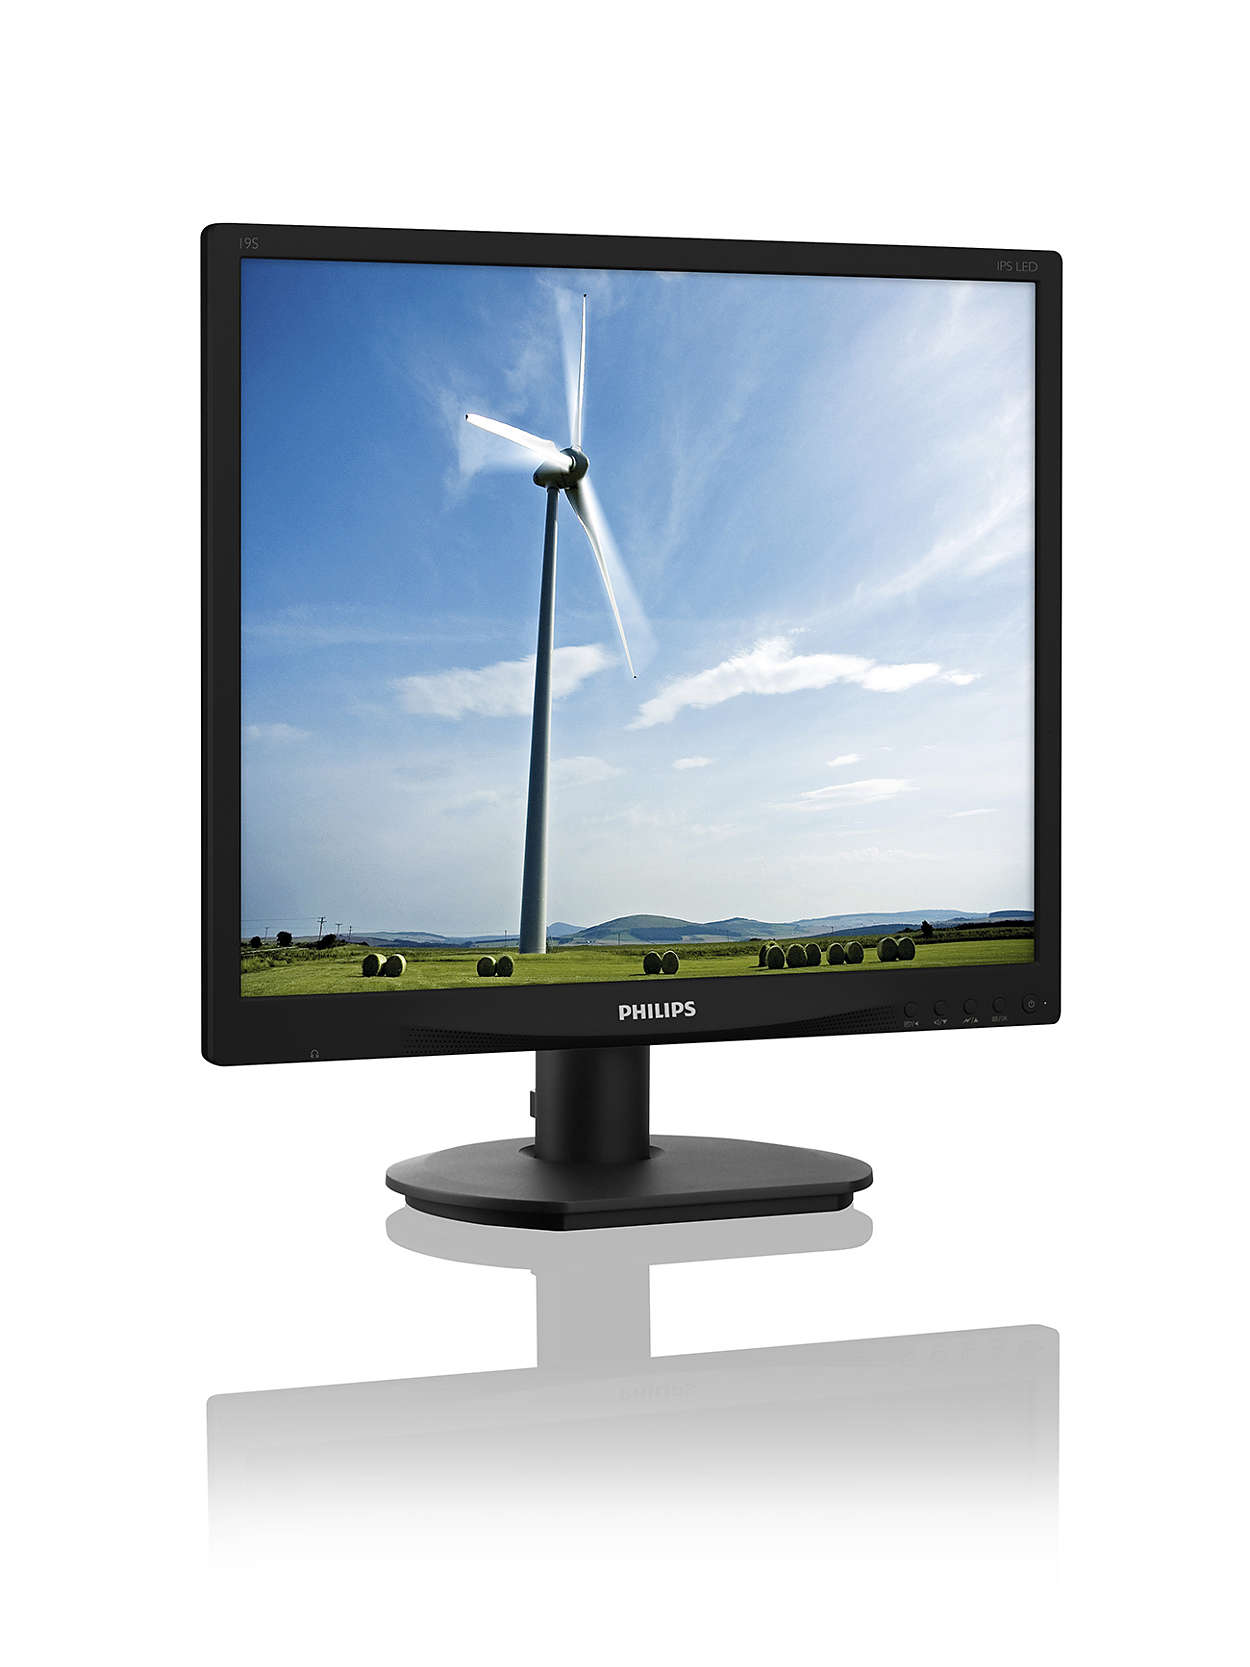 Philips LCD 19S4QAB 19'', LED, IPS-ADS, 5ms, DC20mil,D-Sub/DVI,repro,1280x1024,č